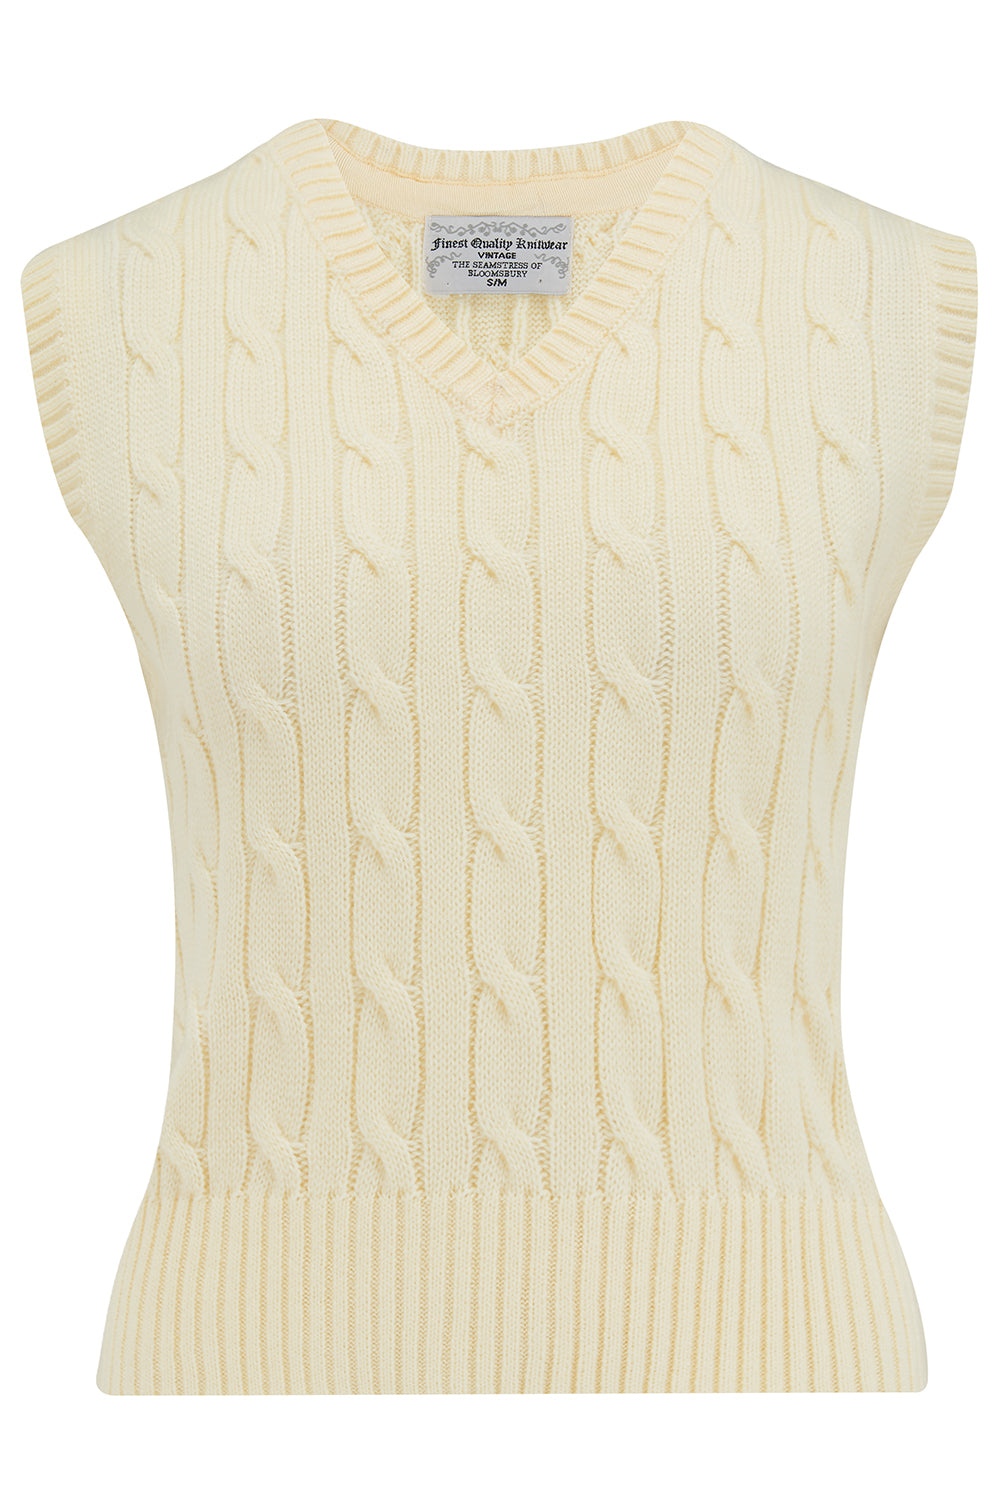 Cable Knit Slipover in Cream, Stunning 1940s True Vintage Style - RocknRomance True 1940s & 1950s Vintage Style